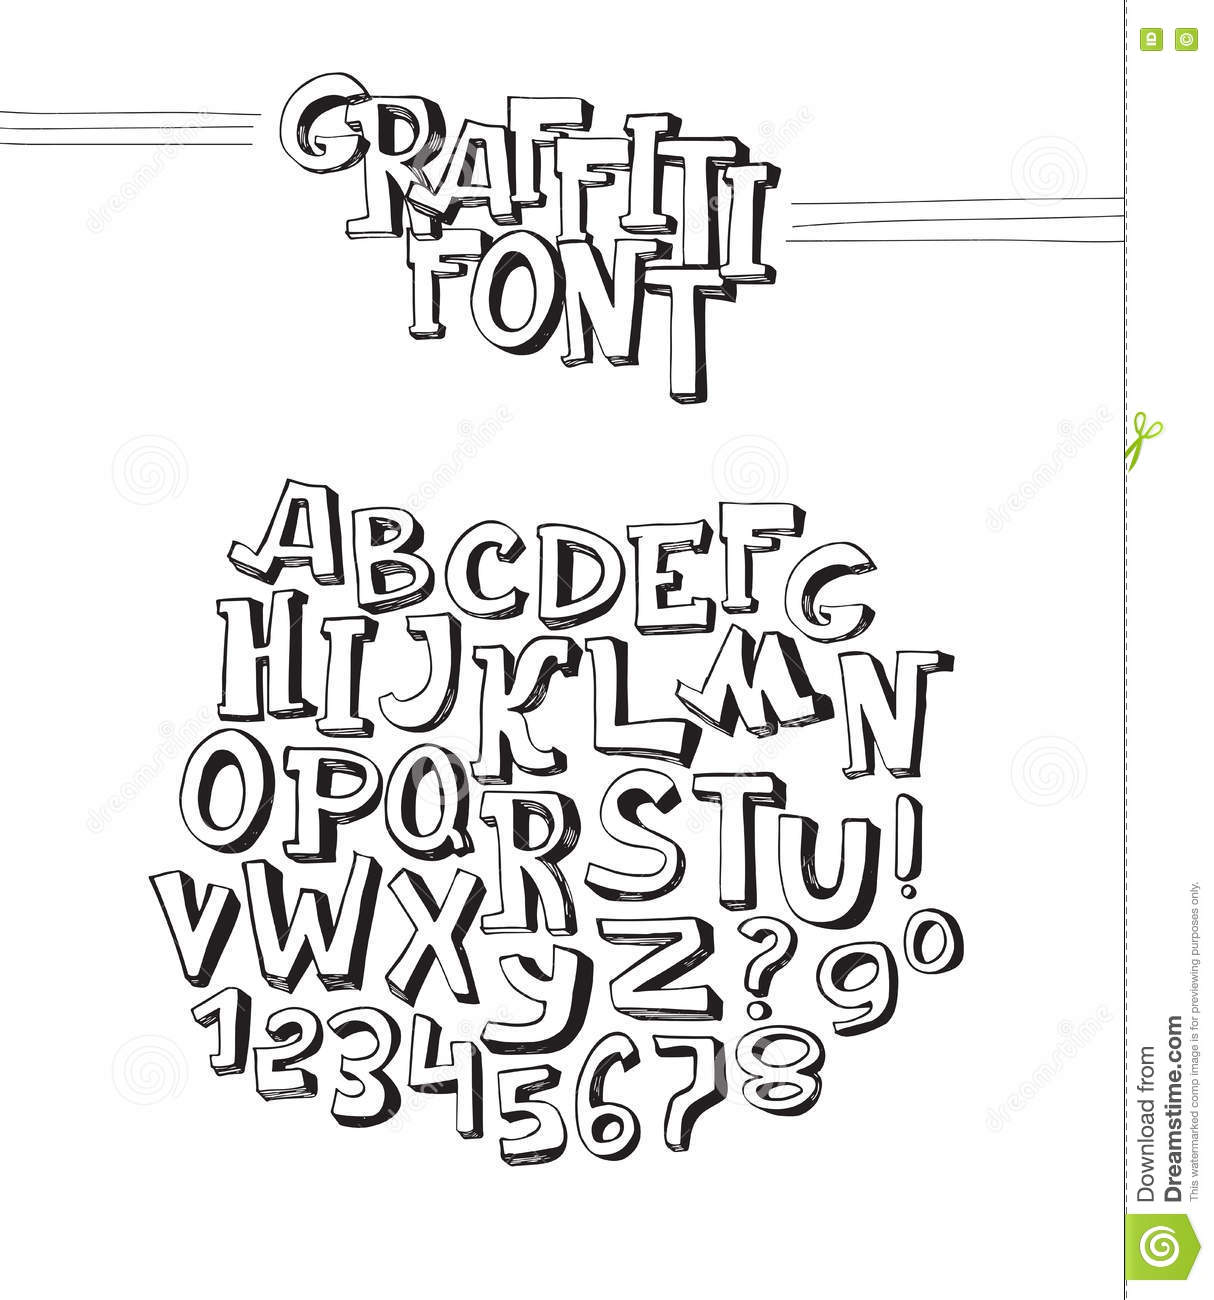 Graffiti font abc letters from a to z and numbers from 0 to 9 isolated on white background vector 3d hand drawn alphabet black dimentional letters